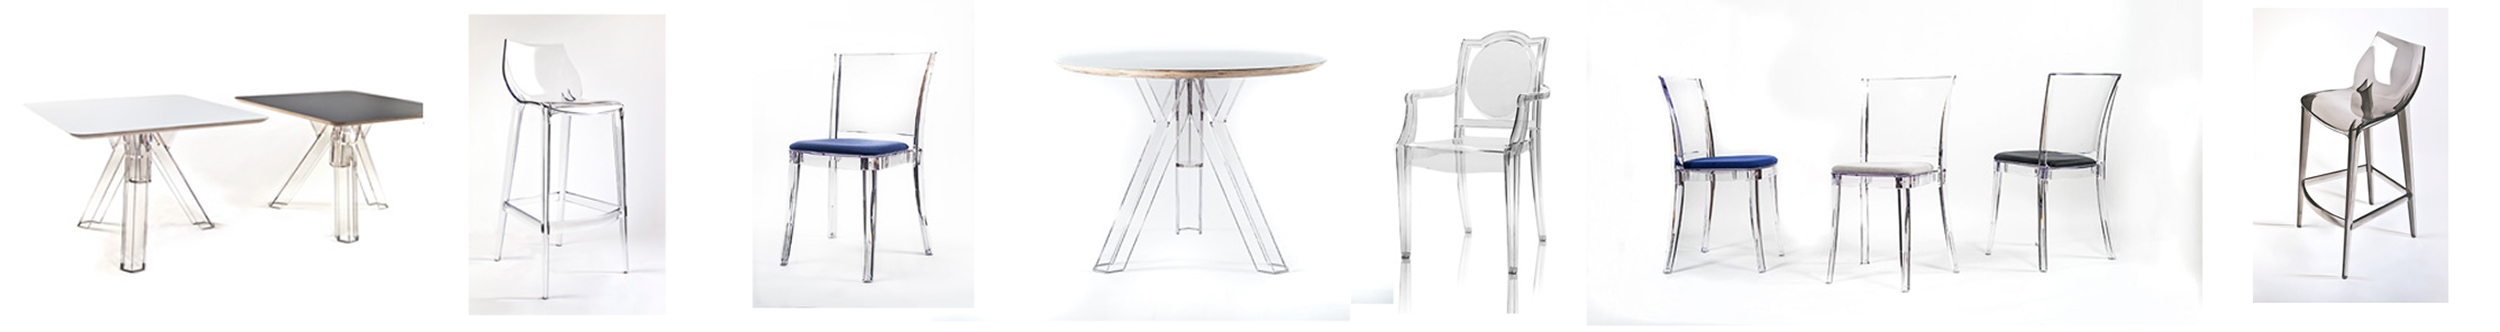 Bellelli Design - Bar Stools